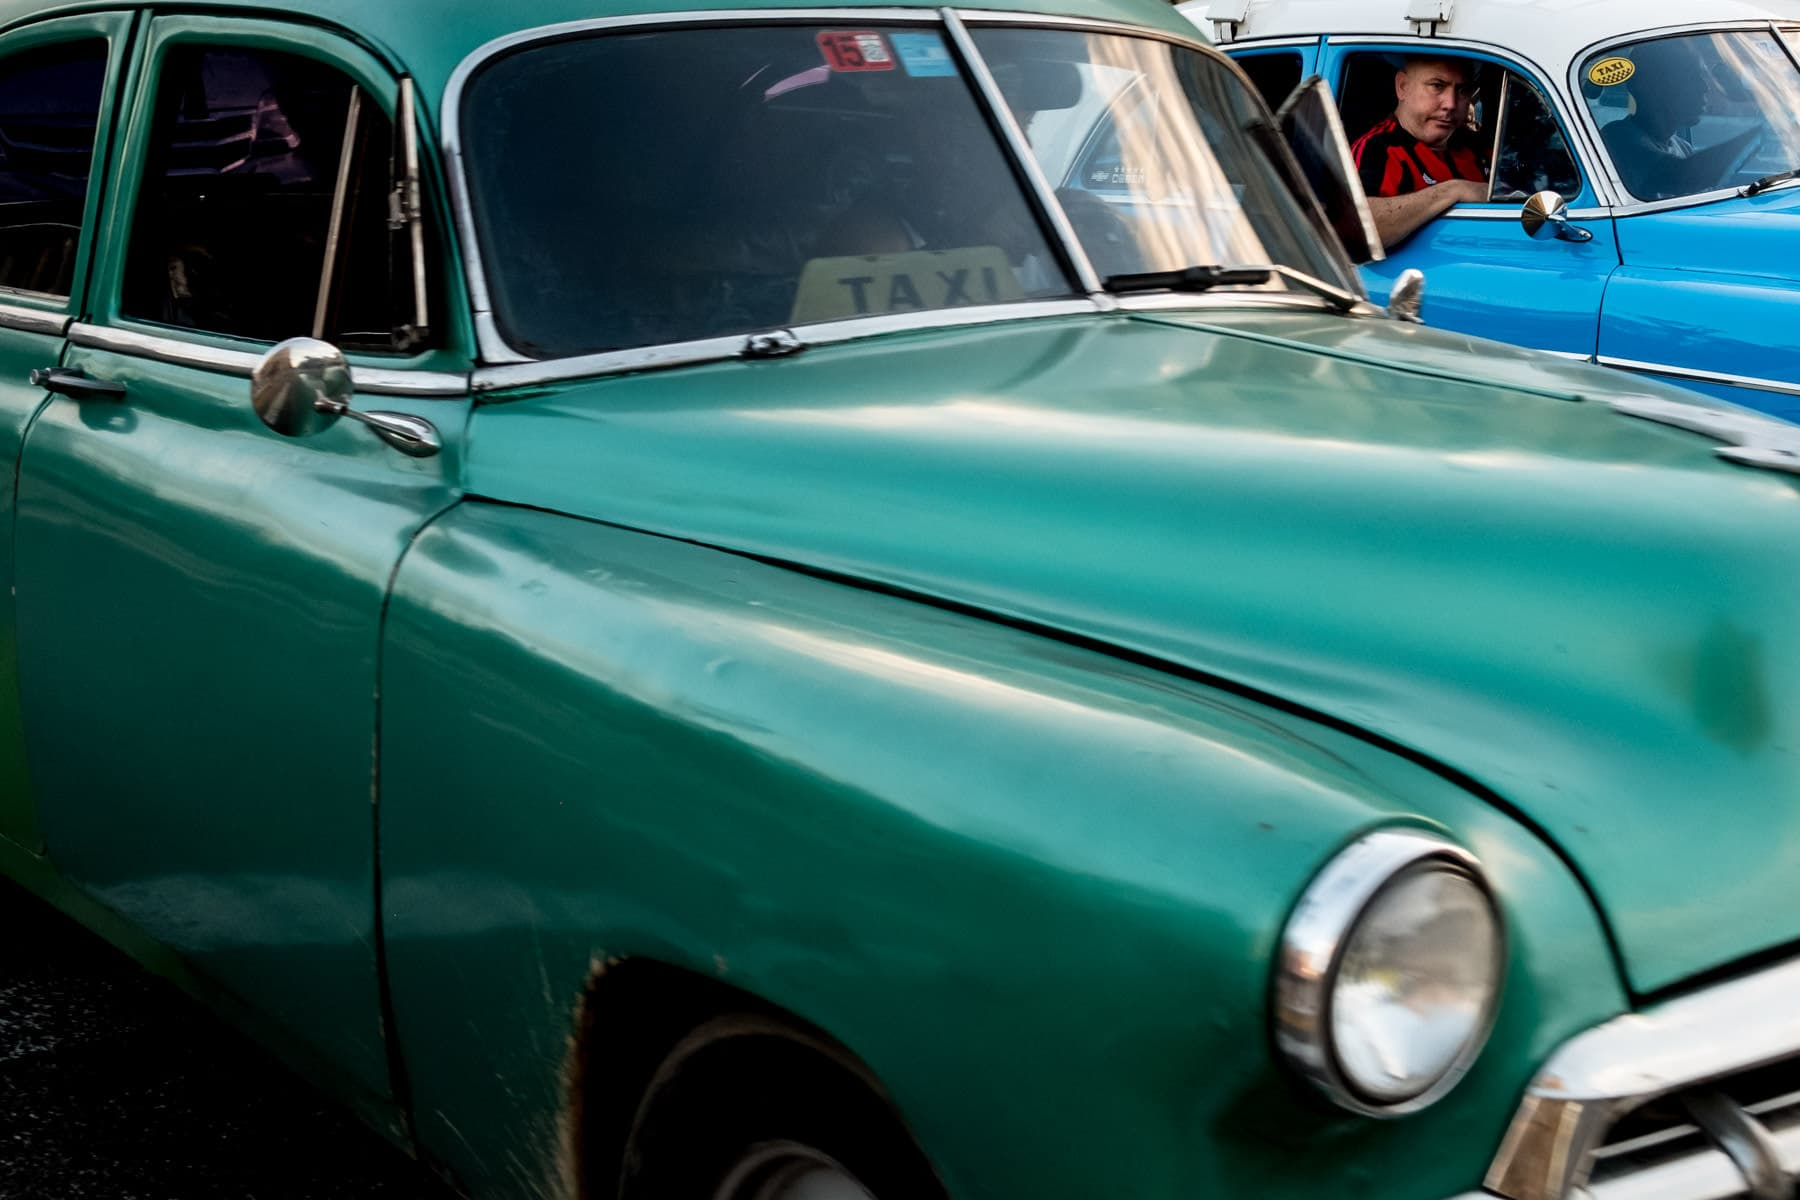 Classic green and blue Cuban cars in havana